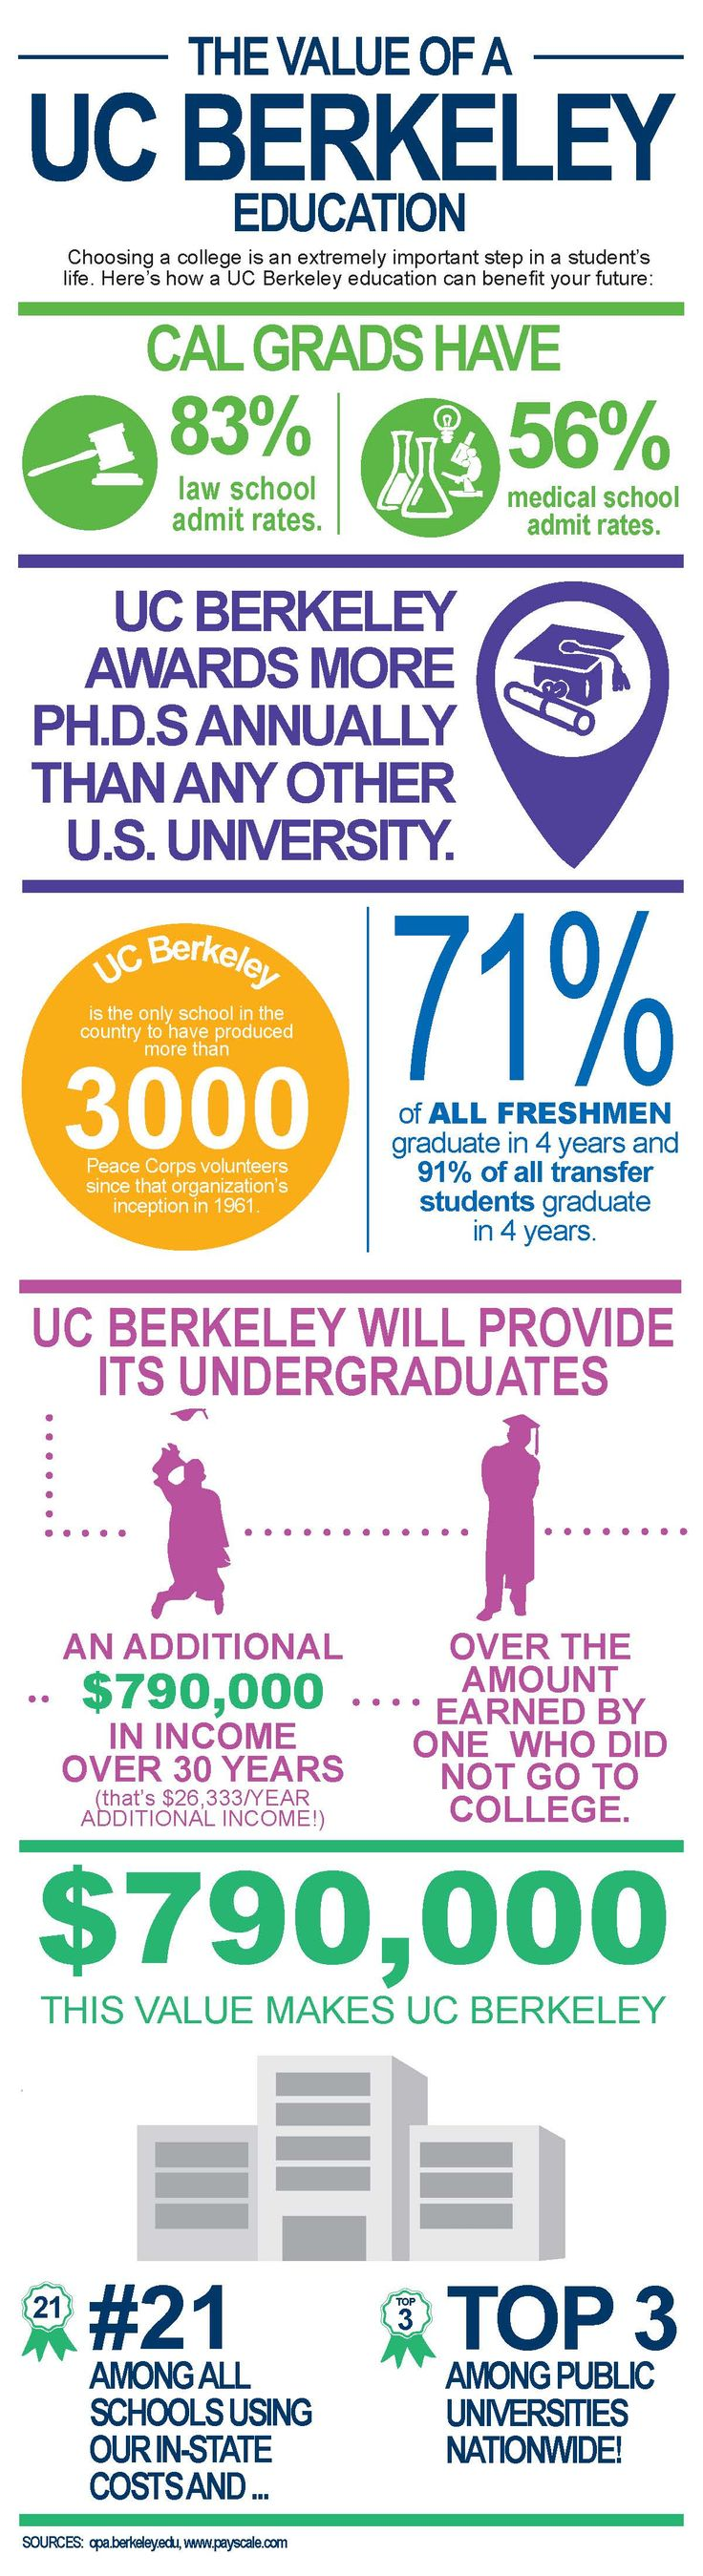 Choosing a college is extremely important. Here's how a UC Berkeley education will benefit you: